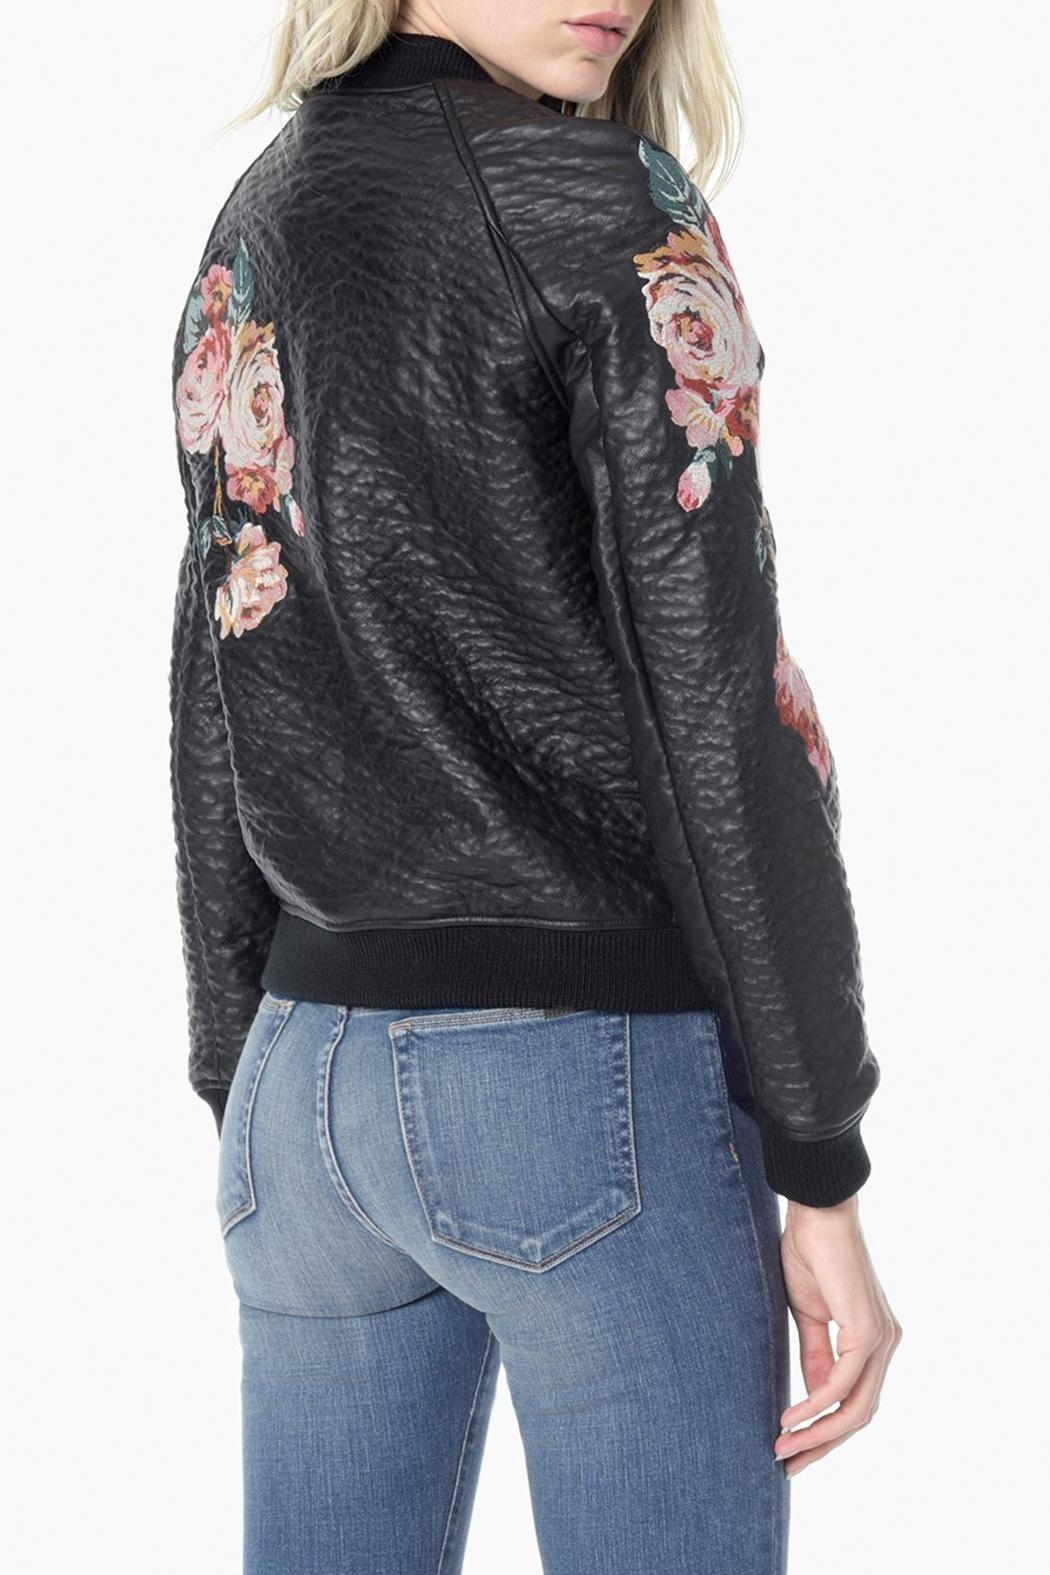 Joe's Jeans Embroidered Bomber Jacket - Side Cropped Image